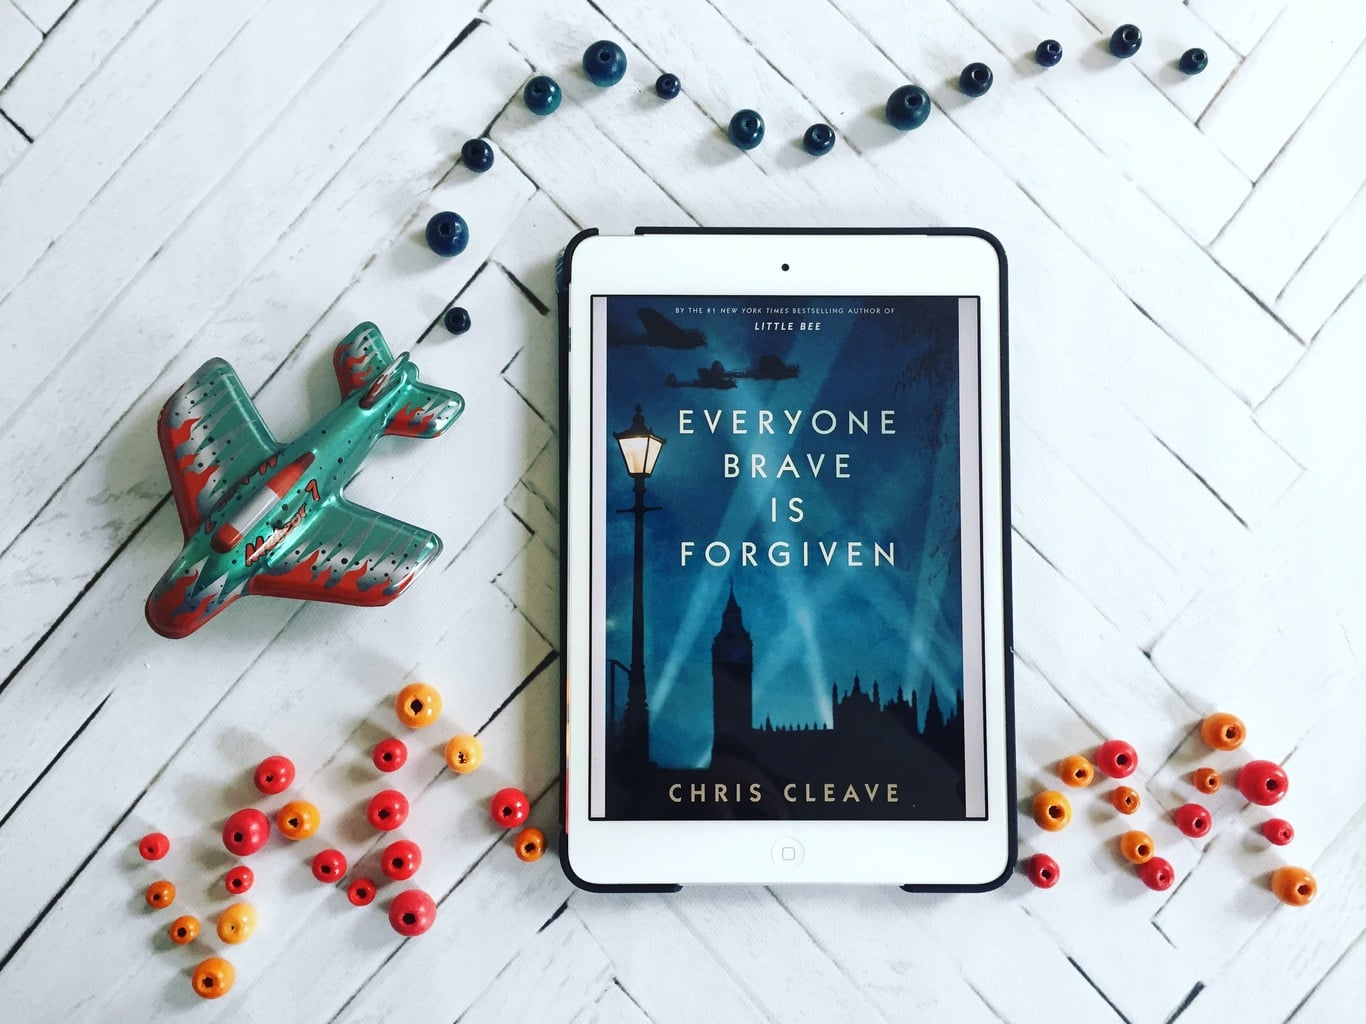 Everyone Brave is Forgiven: A Somewhat Enjoyable Literary Tale